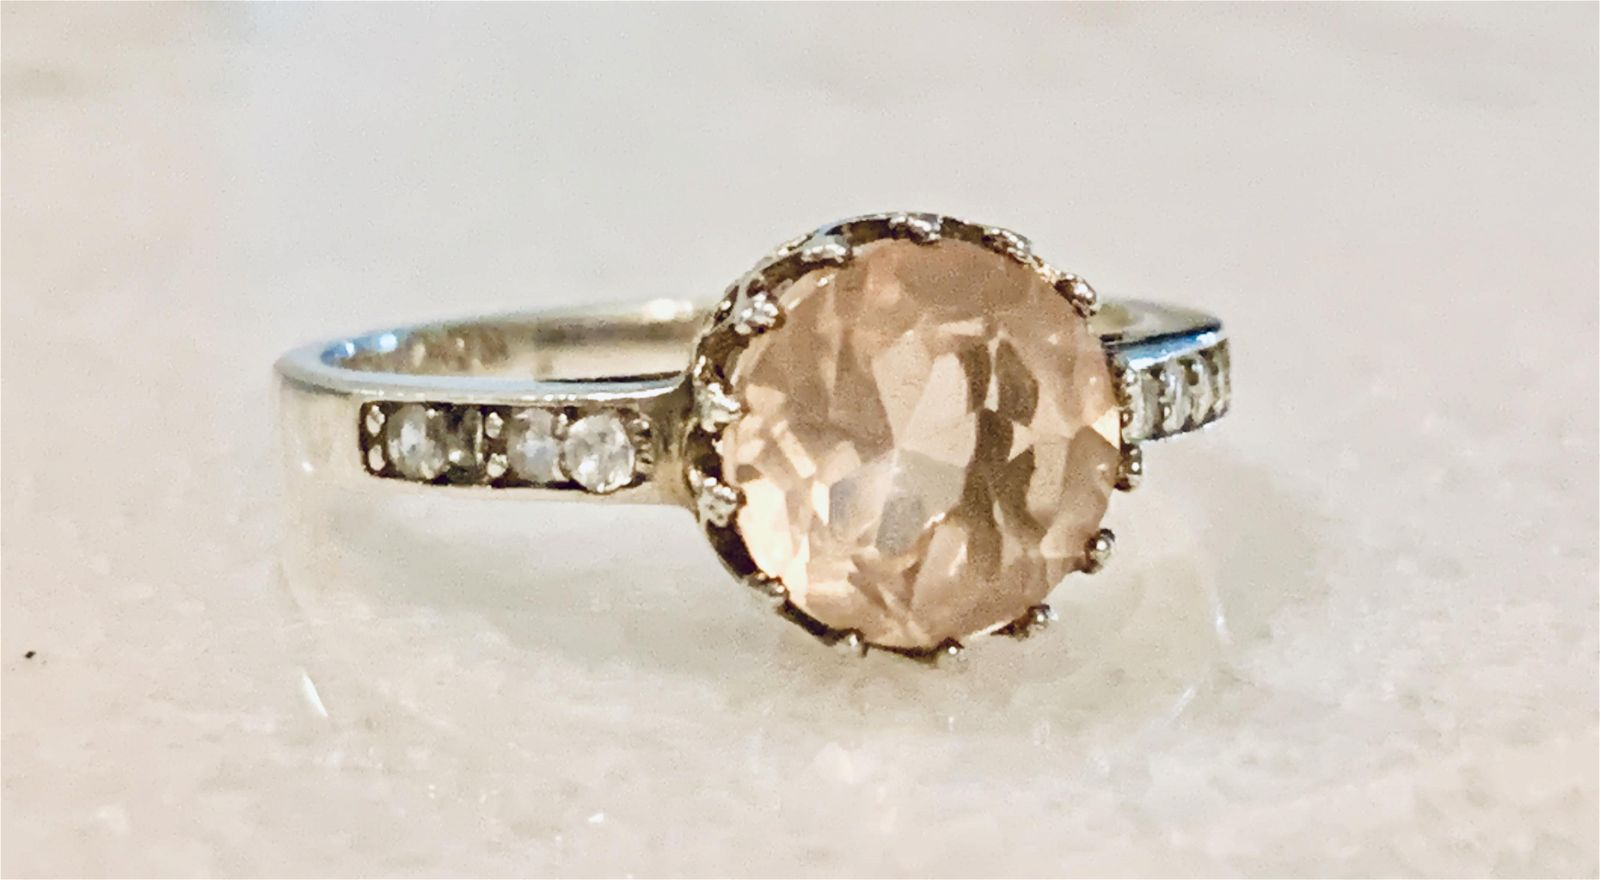 MODERN STERLING SILVER PINK STONE COCKTAIL RING SZ 8.5